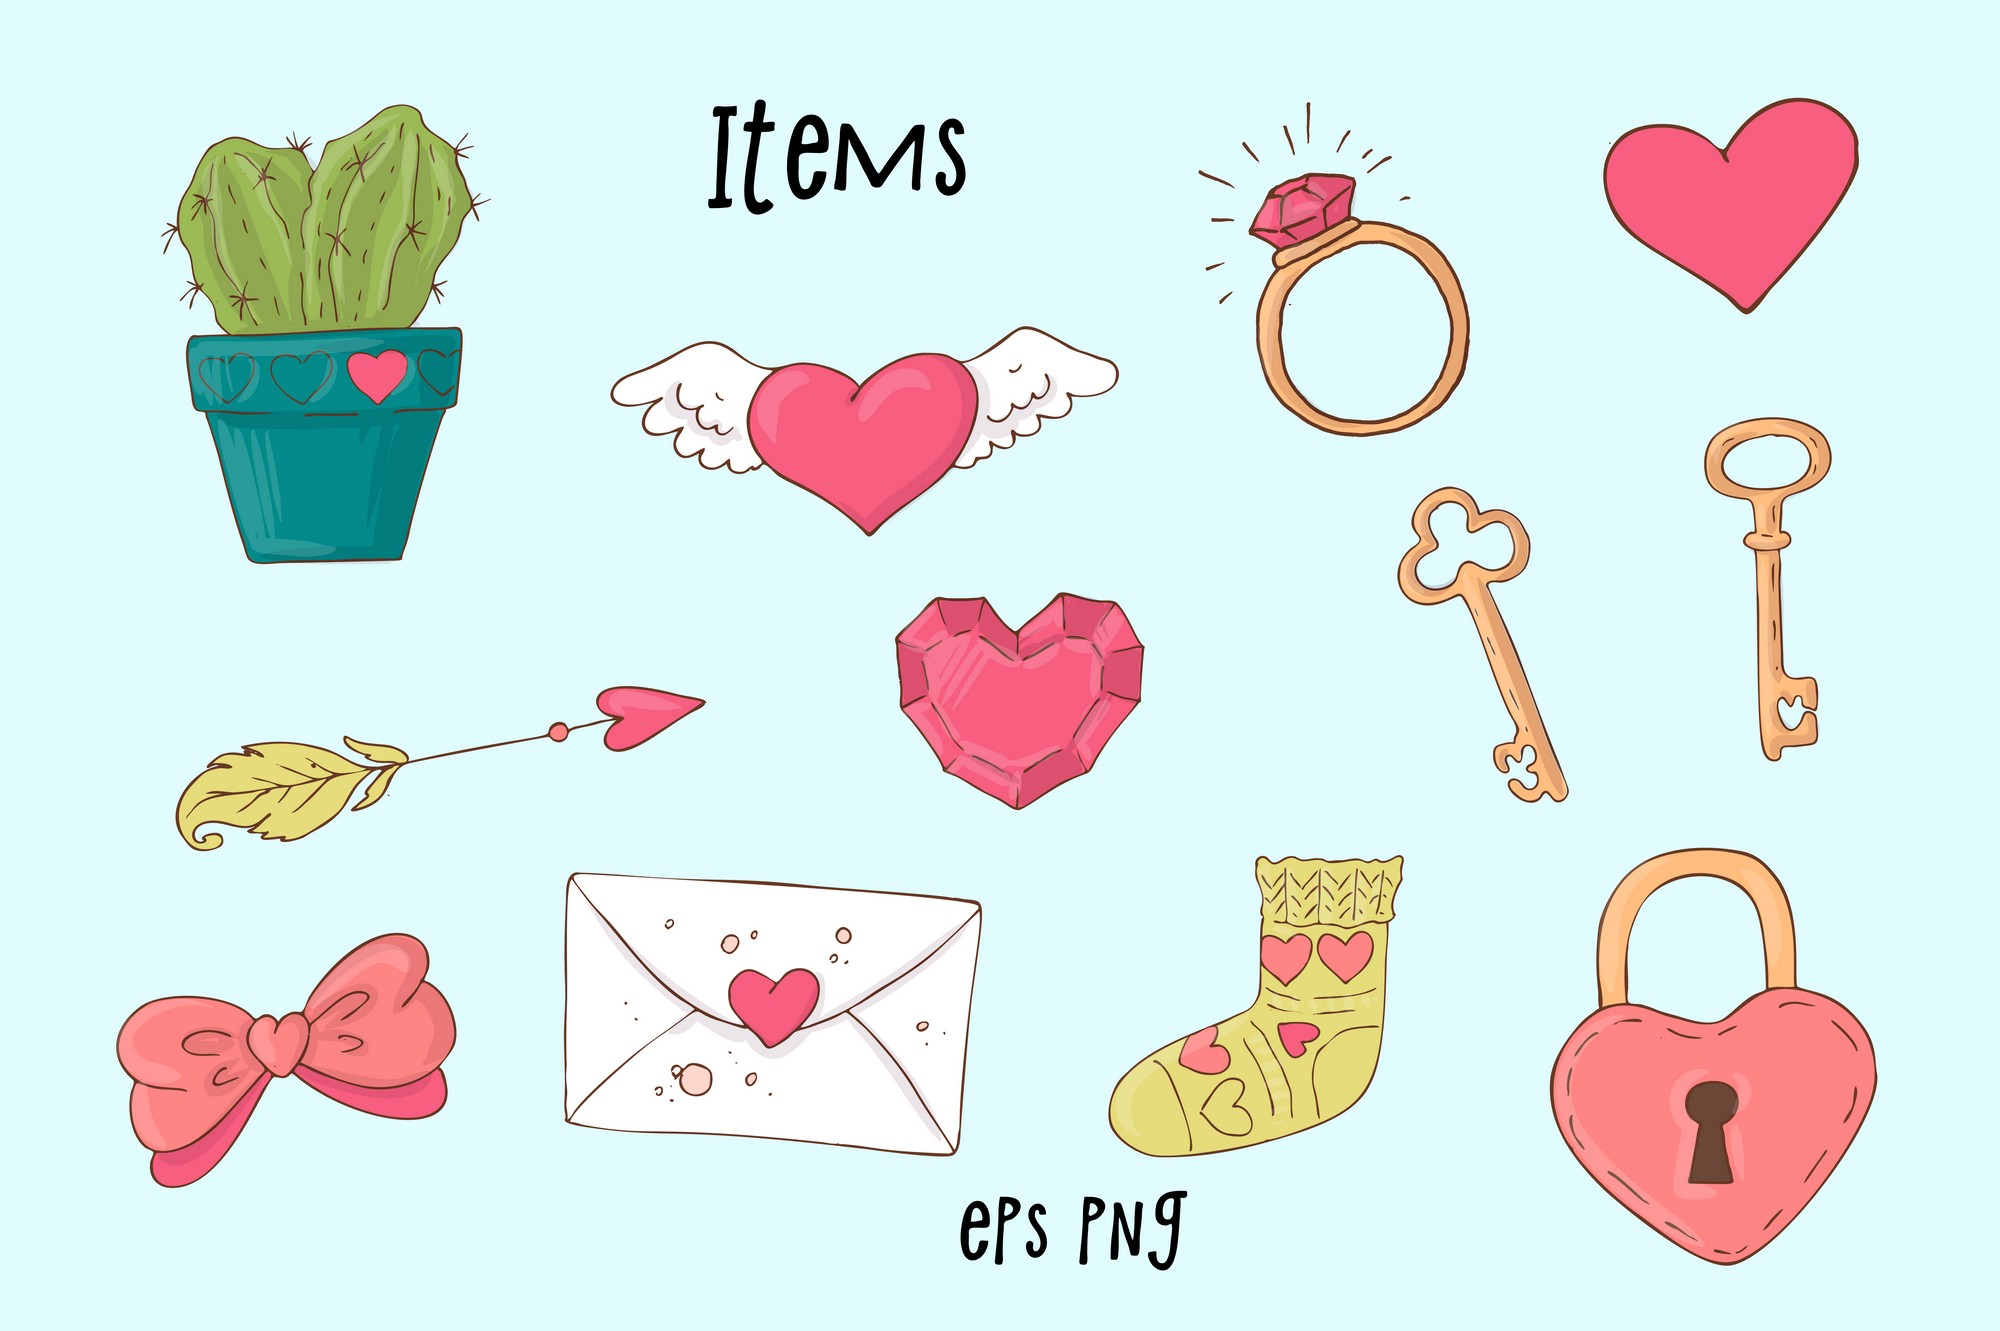 Valentine's Day clipart Collection: 90 Items - $15 - Image00008 2